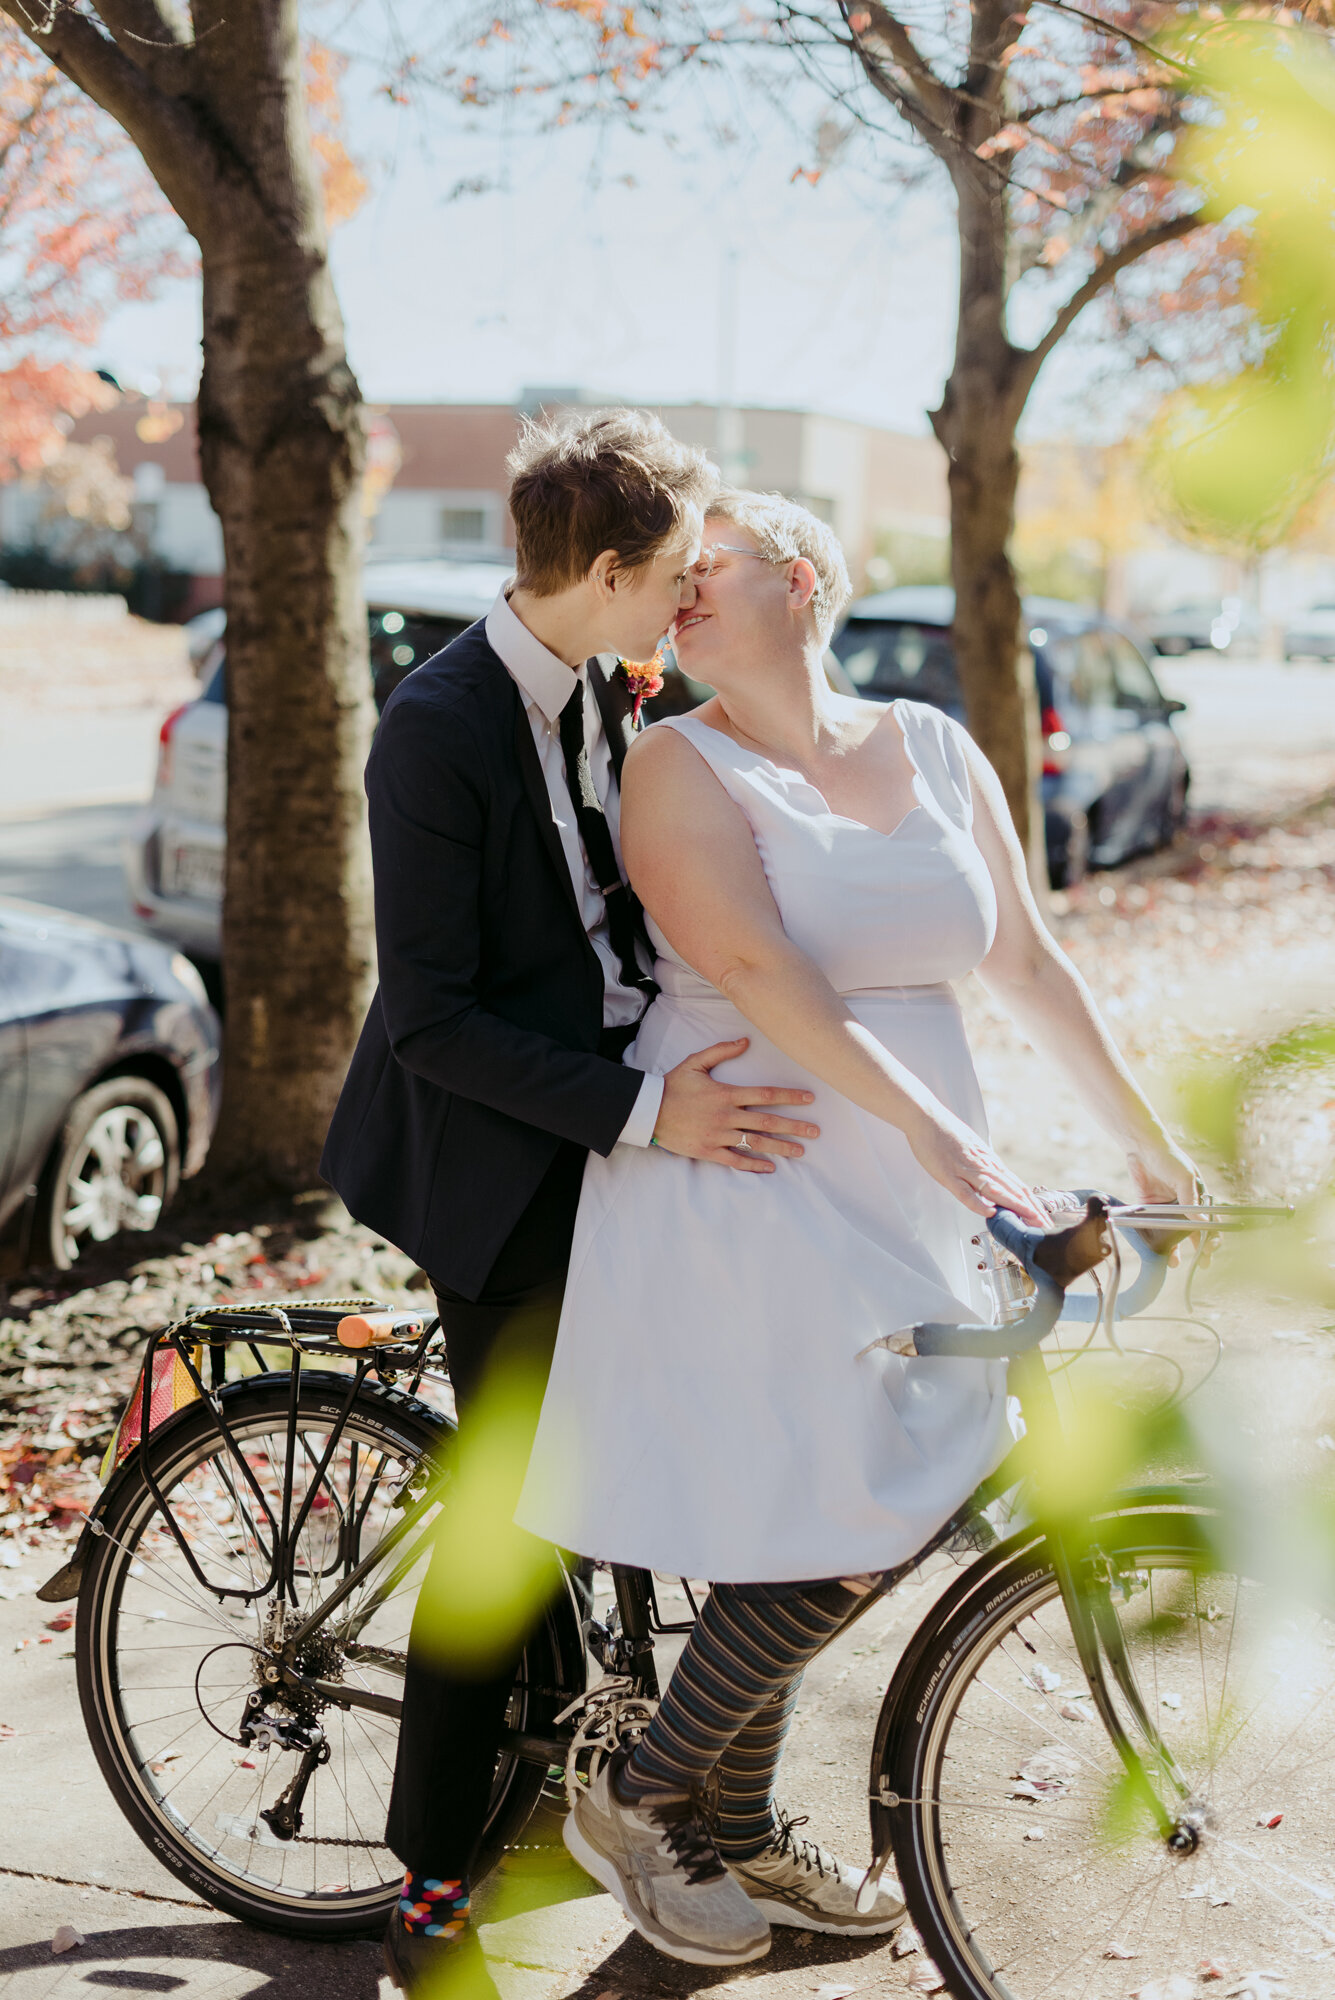 MN Wedding Photographers | Rivets & Roses | Photography by Tara Sloane